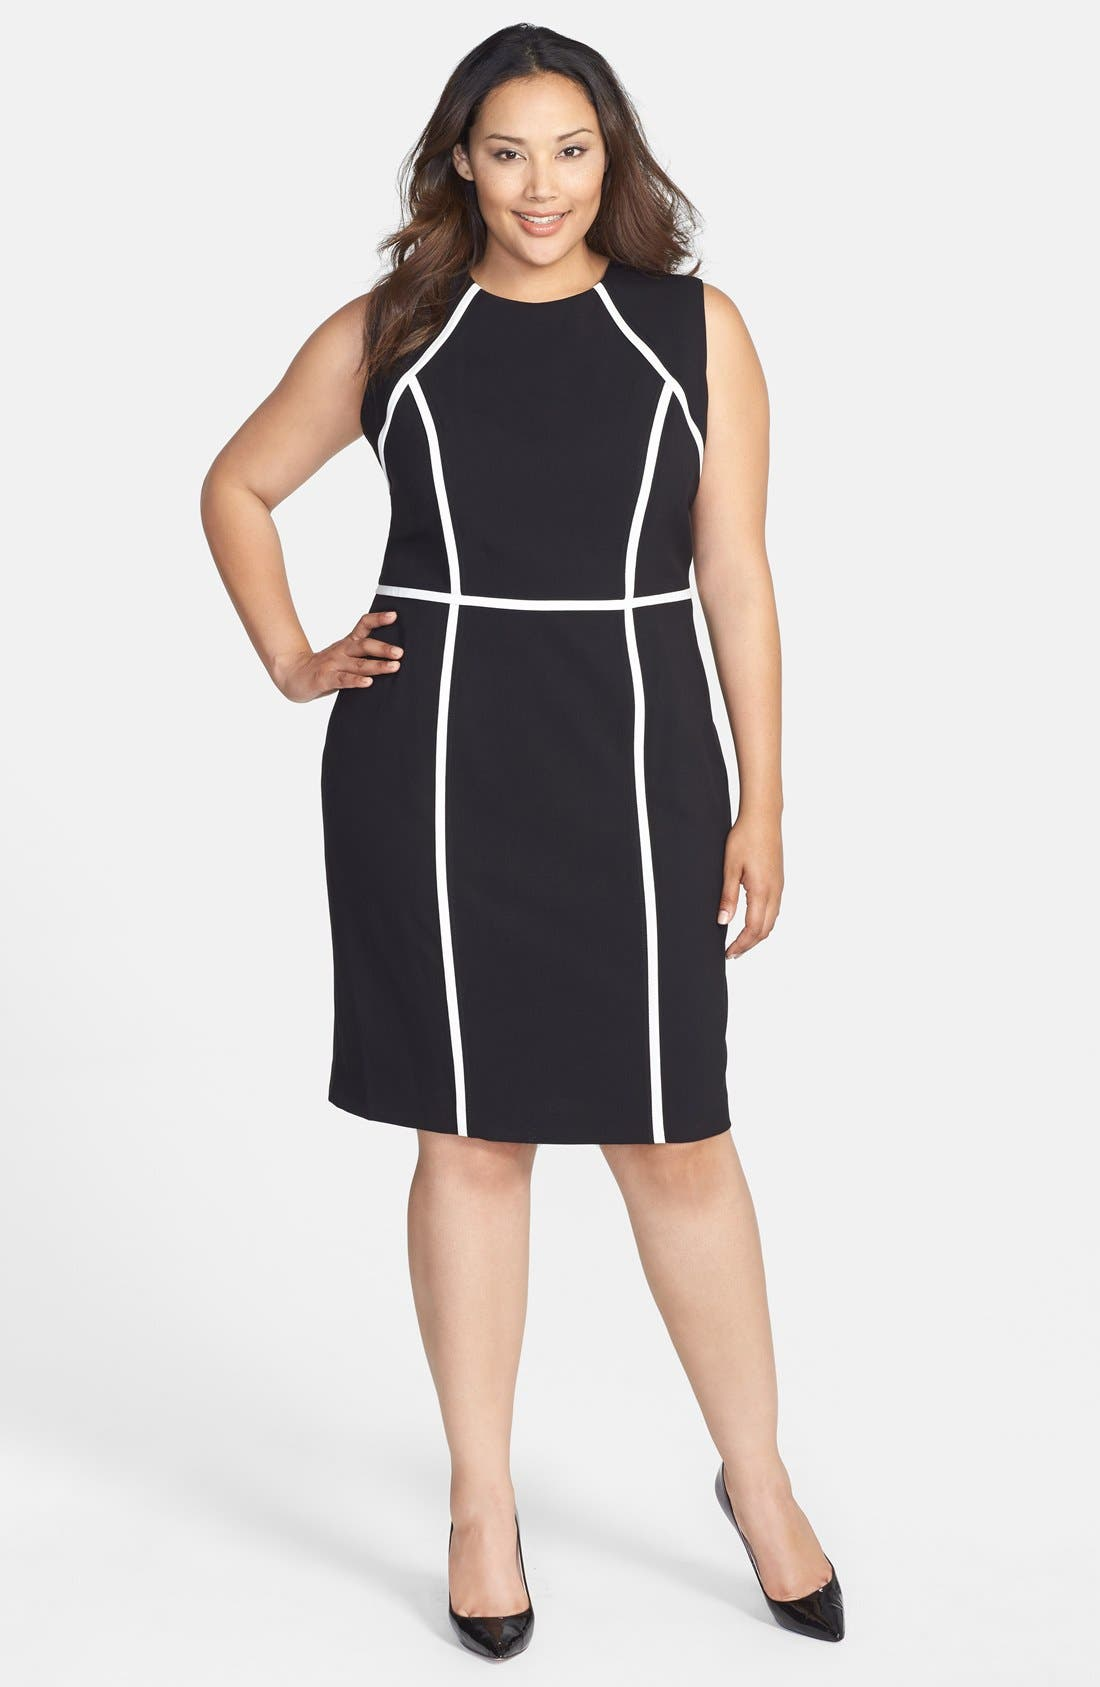 Alternate Image 1 Selected - Calvin Klein Contrast Detail Sheath Dress (Plus Size)